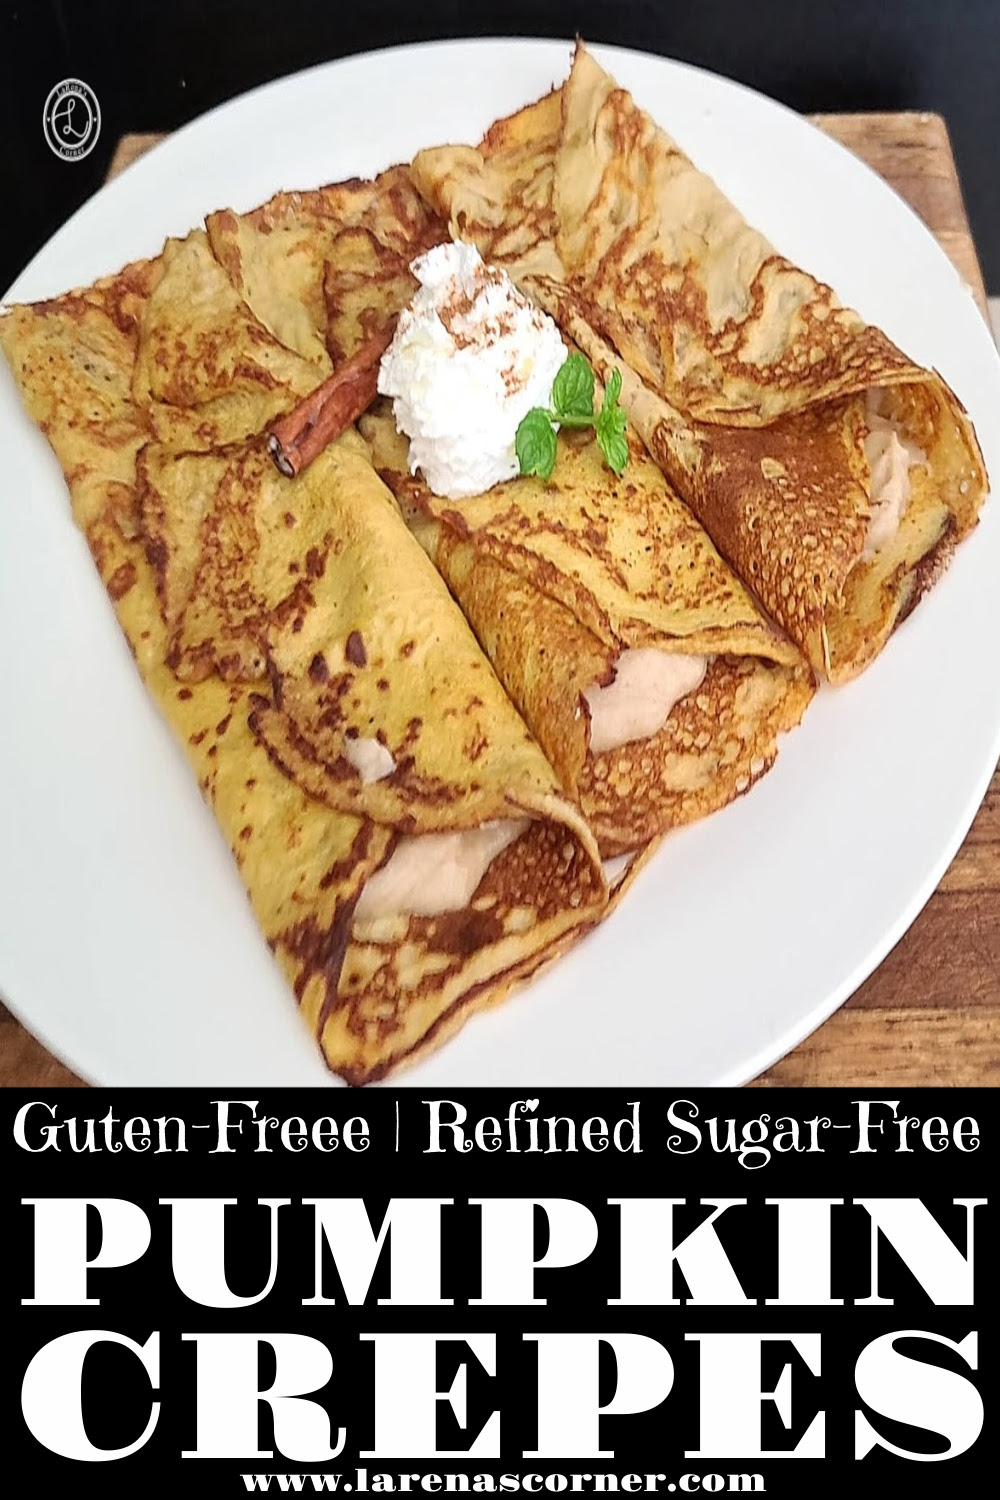 Gluten-Free Pumpkin Crepes on a plate